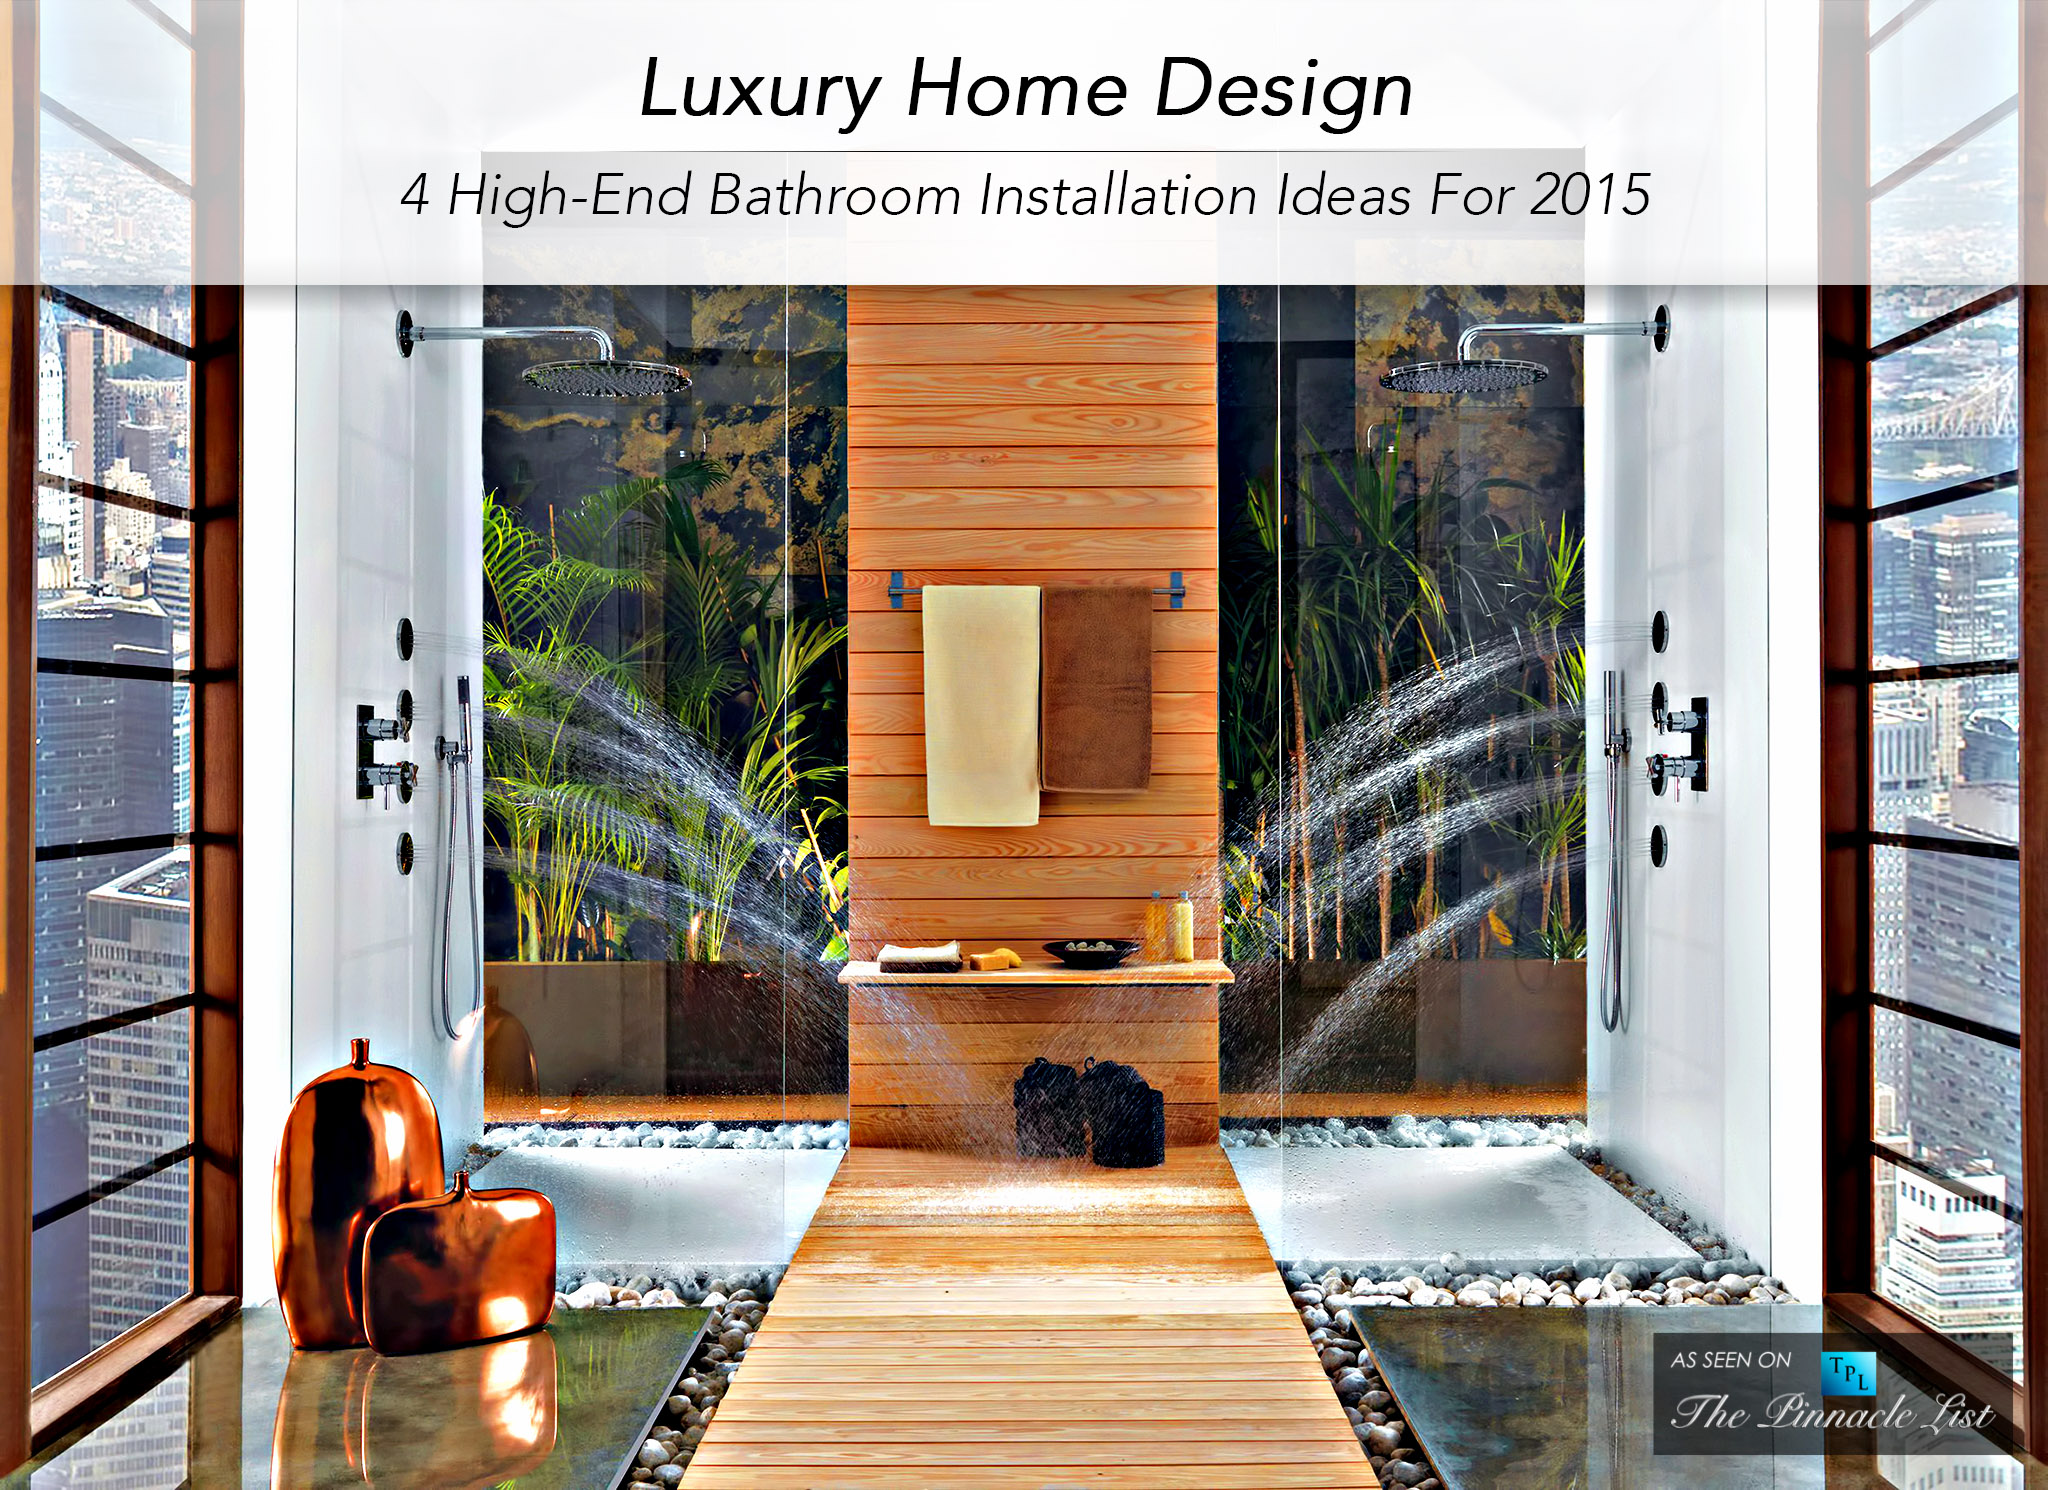 Luxury Home Design - 4 High-End Bathroom Installation Ideas